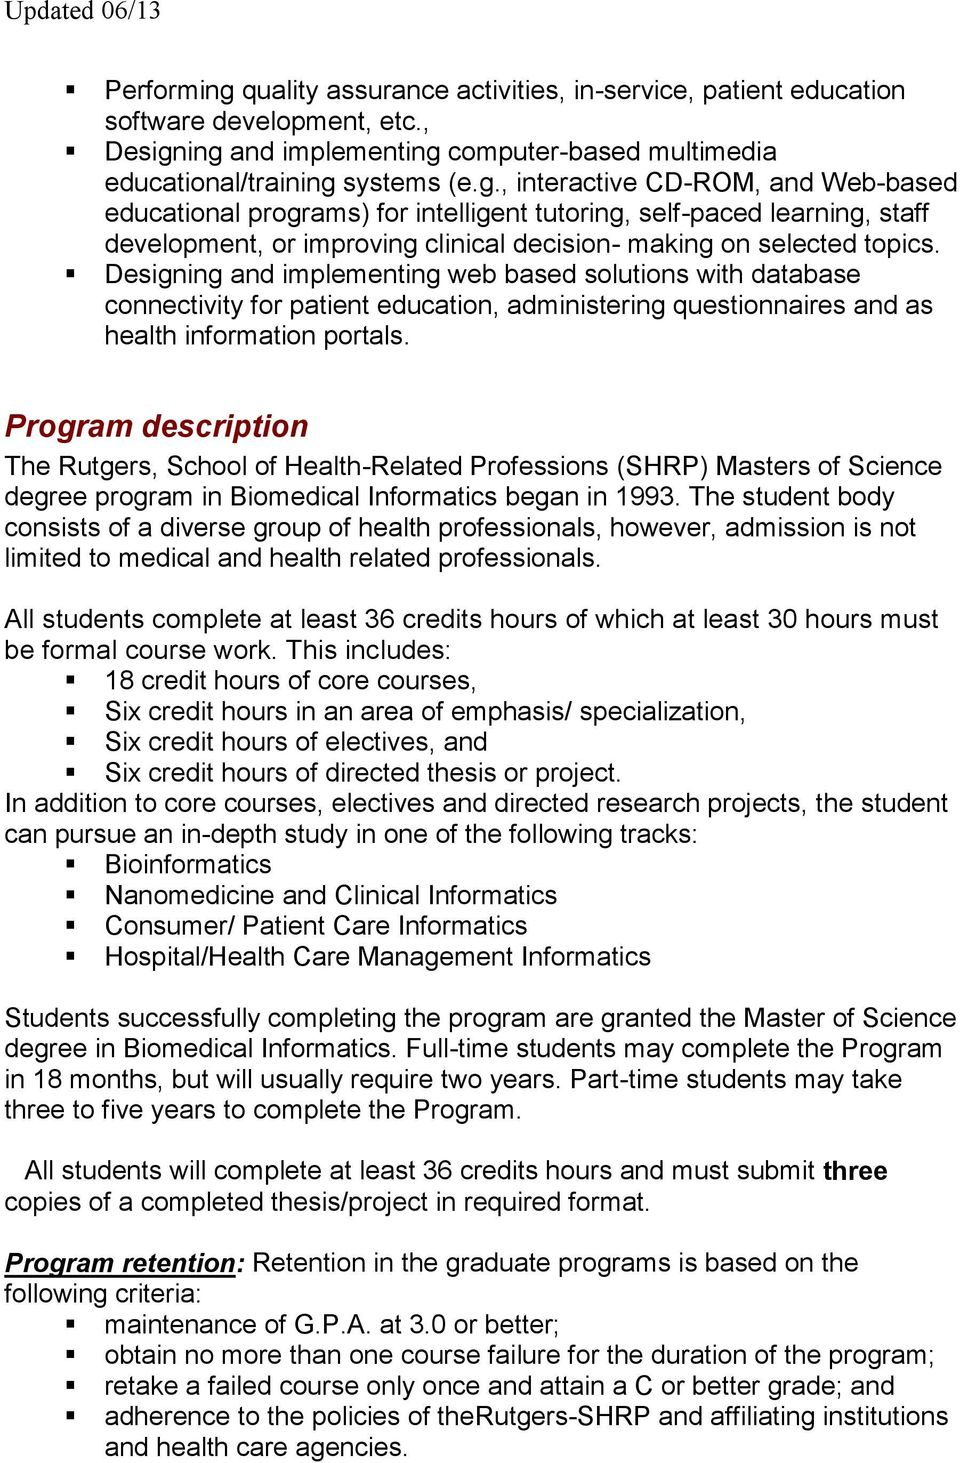 Program description The Rutgers, School of Health-Related Professions (SHRP) Masters of Science degree program in Biomedical Informatics began in 1993.